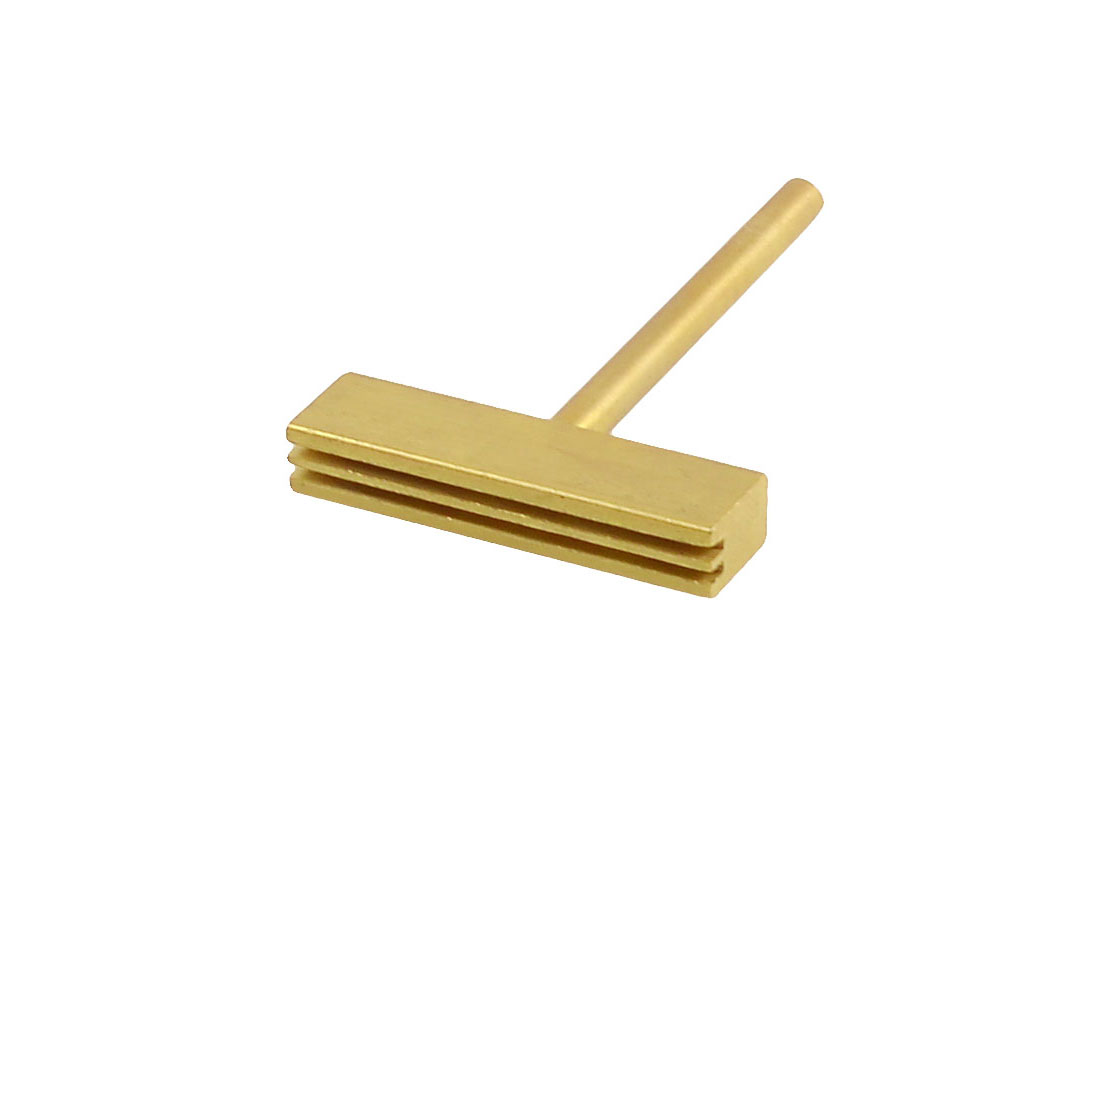 Ribbon Replacements 30W Gold Tone T Shaped Head for Soldering Iron